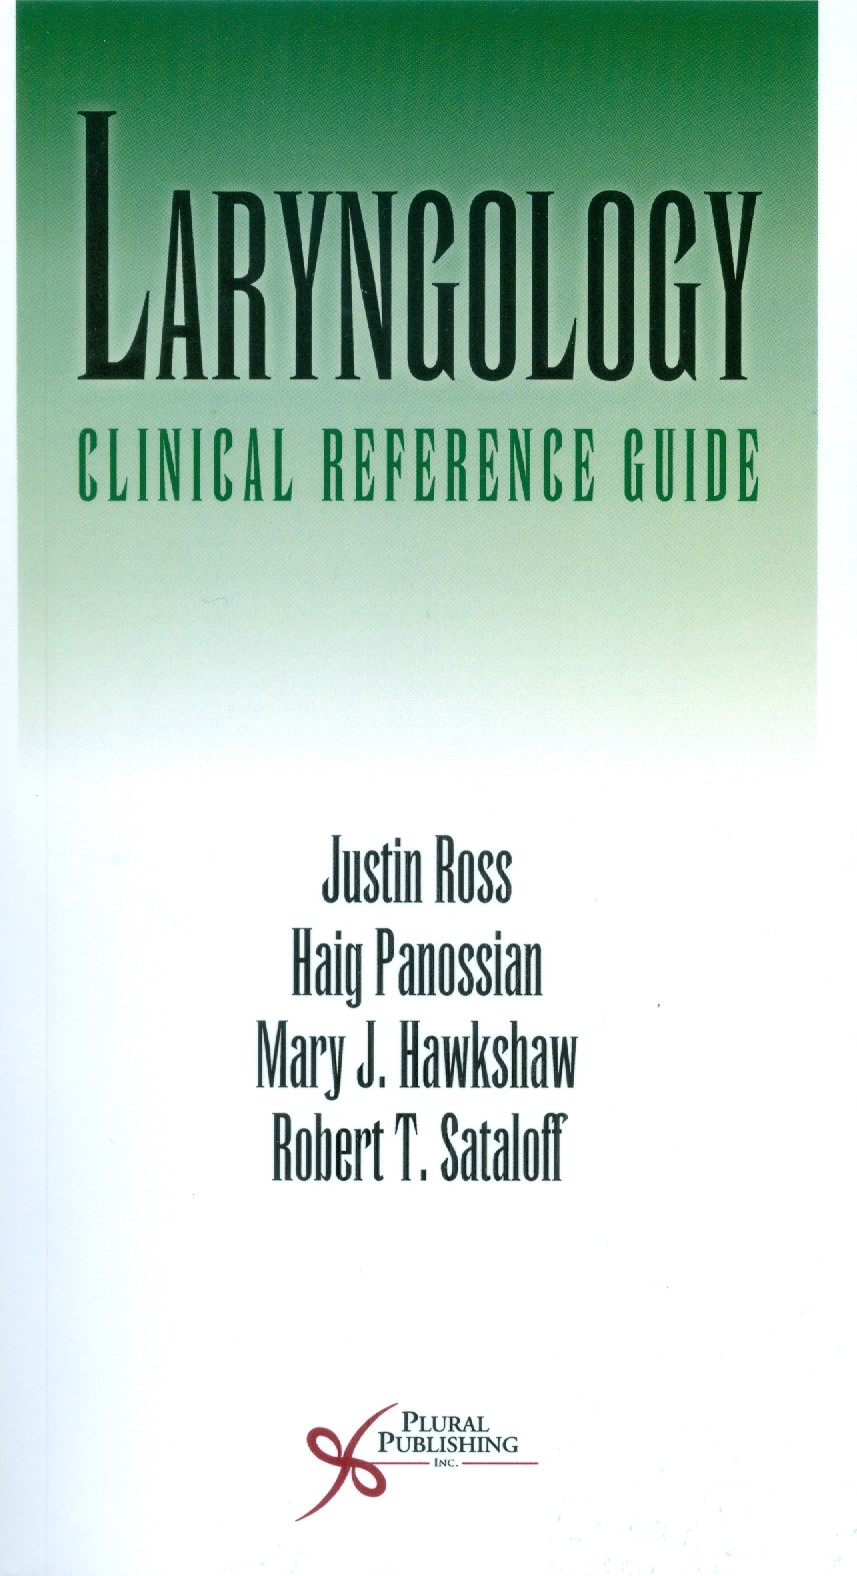 Laryngology: Clinical Reference Guide